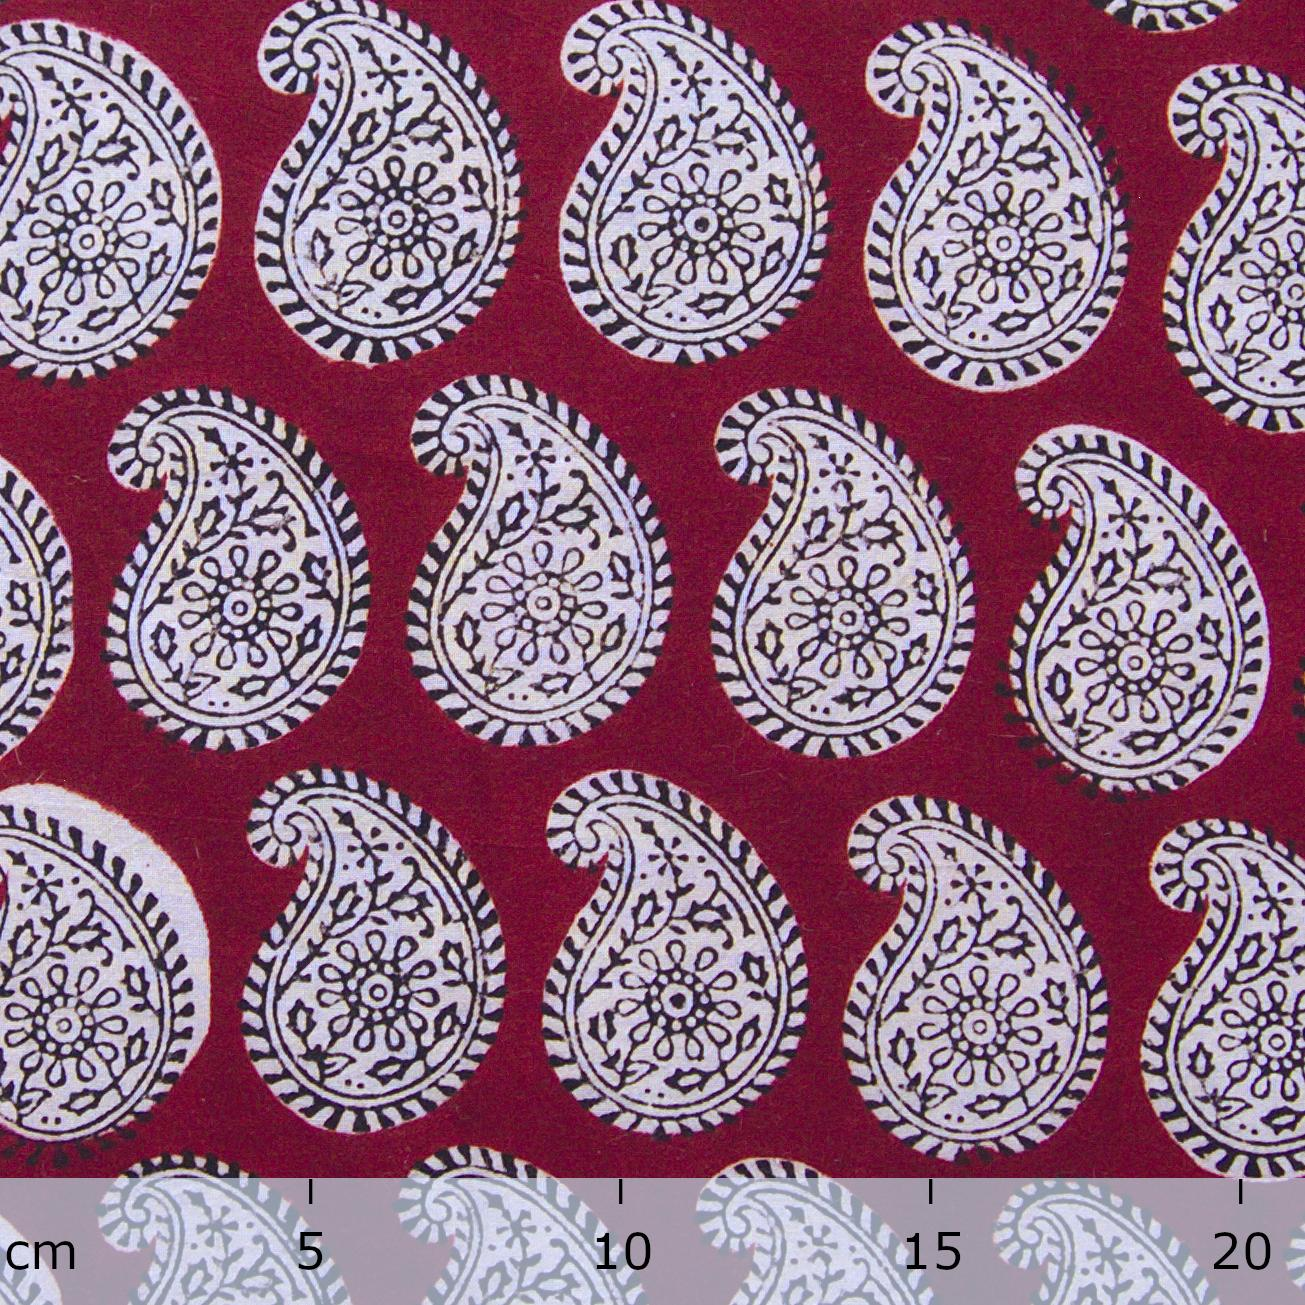 100% Block-Printed Cotton Fabric From India- Bagh - Alizarin Red Paisley Print - Ruler